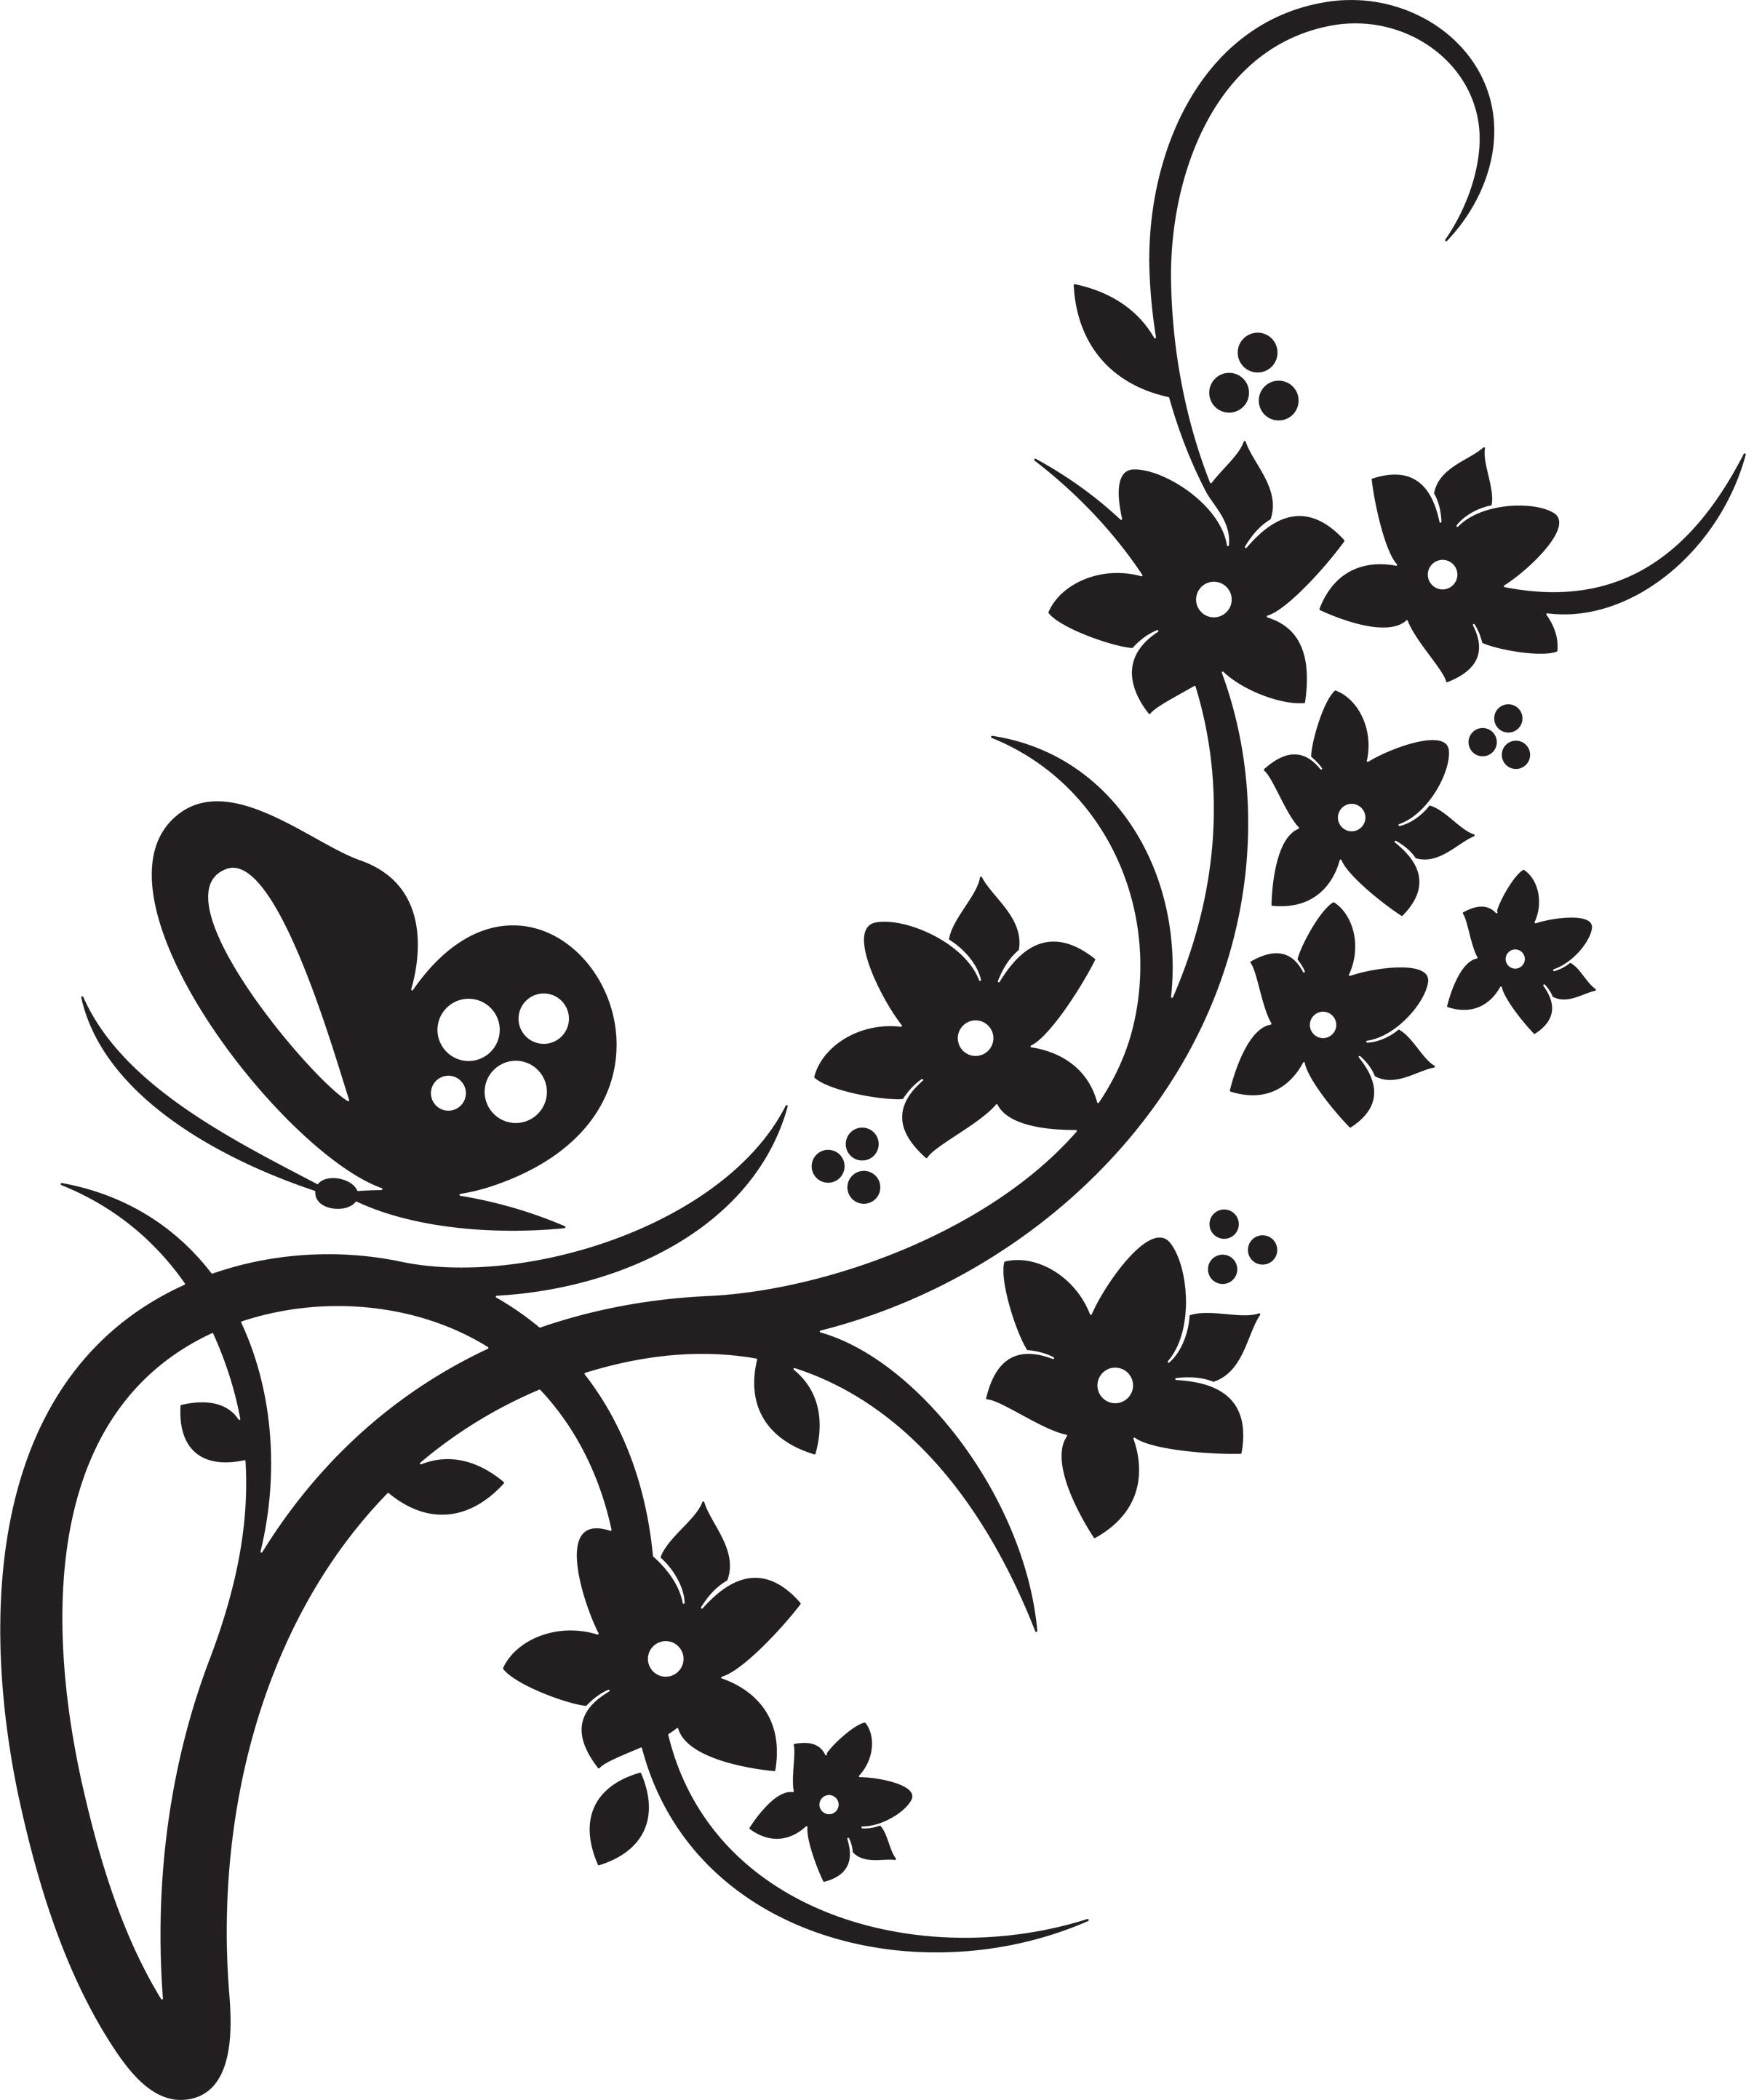 Flower border clipart black and white mightylinksfo